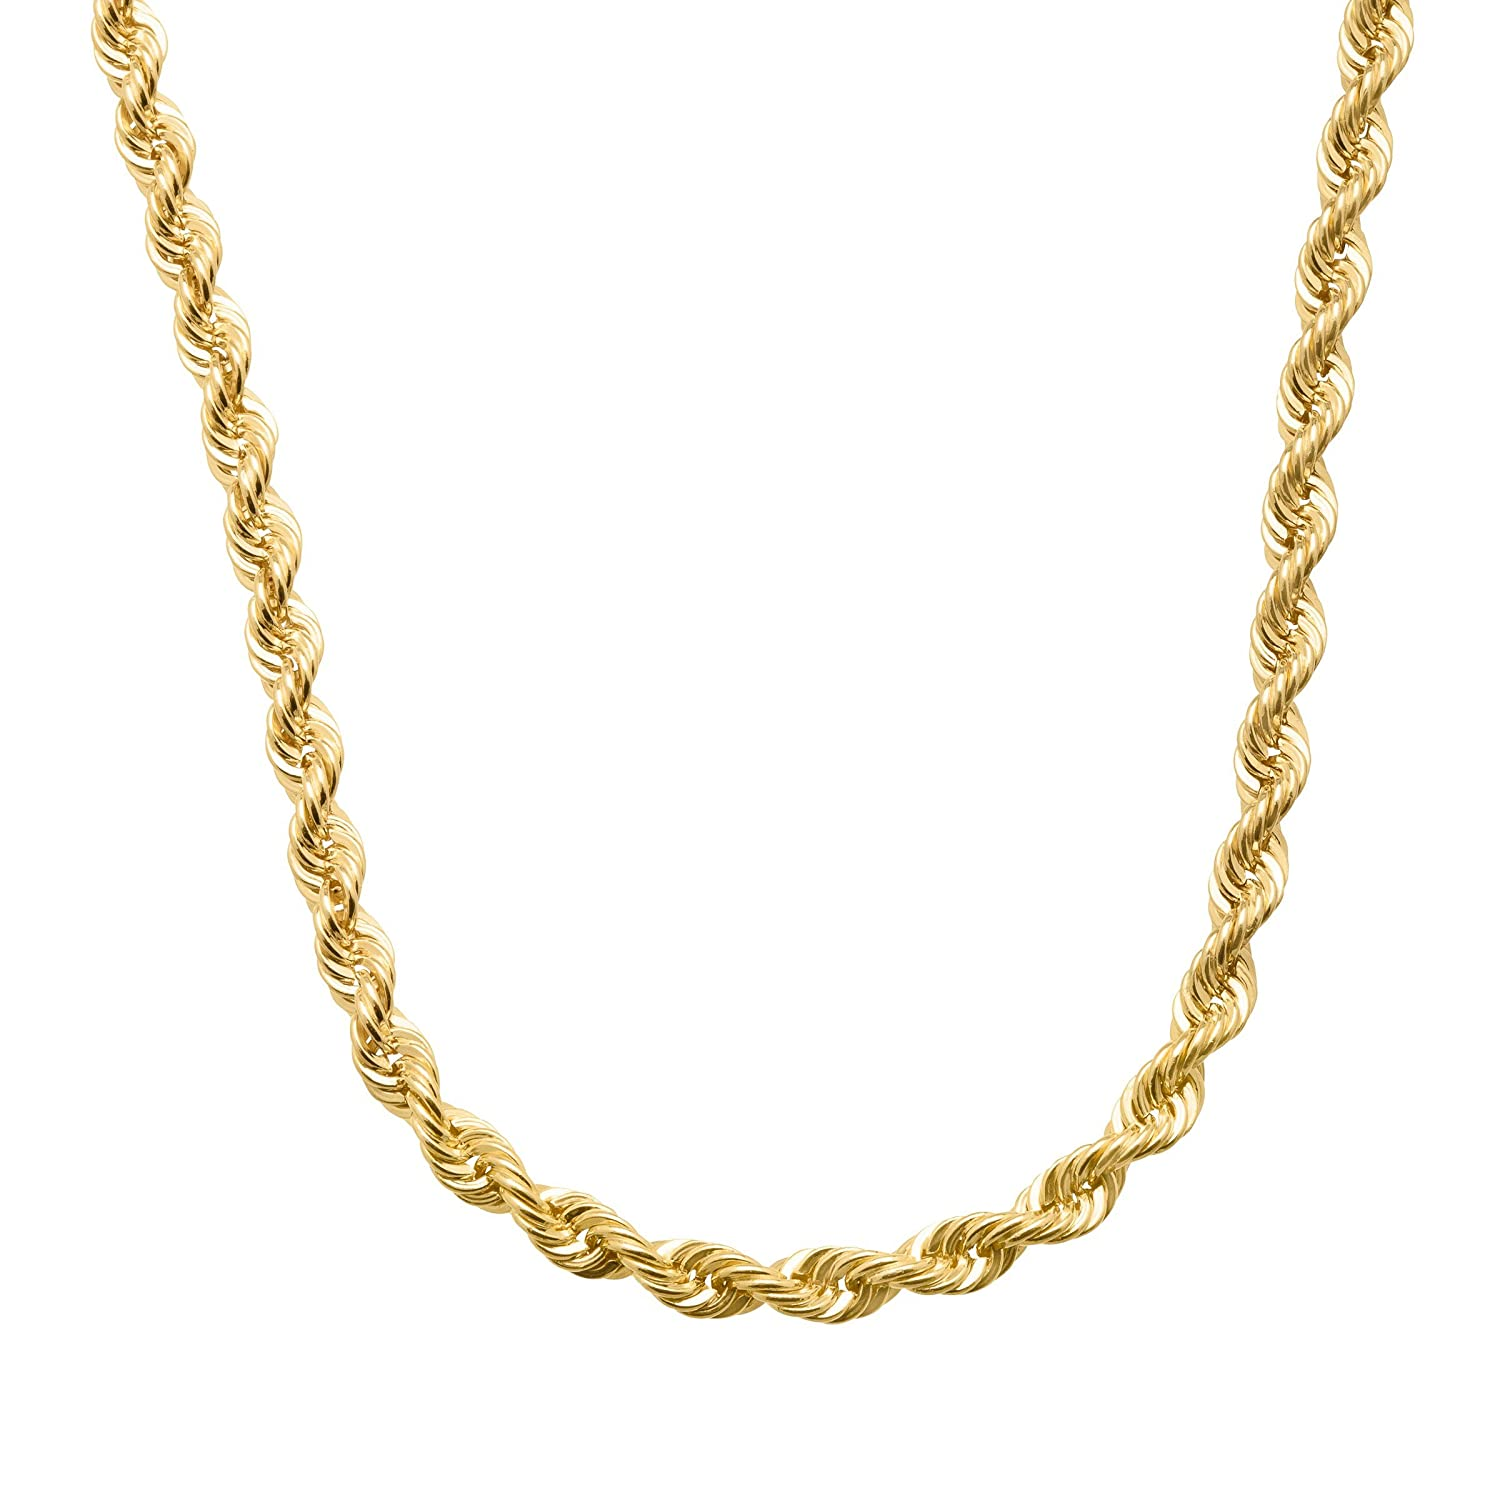 1a4d564aad3 Amazon.com: Just Gold 20-inch French Rope Chain Necklace in 14K Gold:  Jewelry